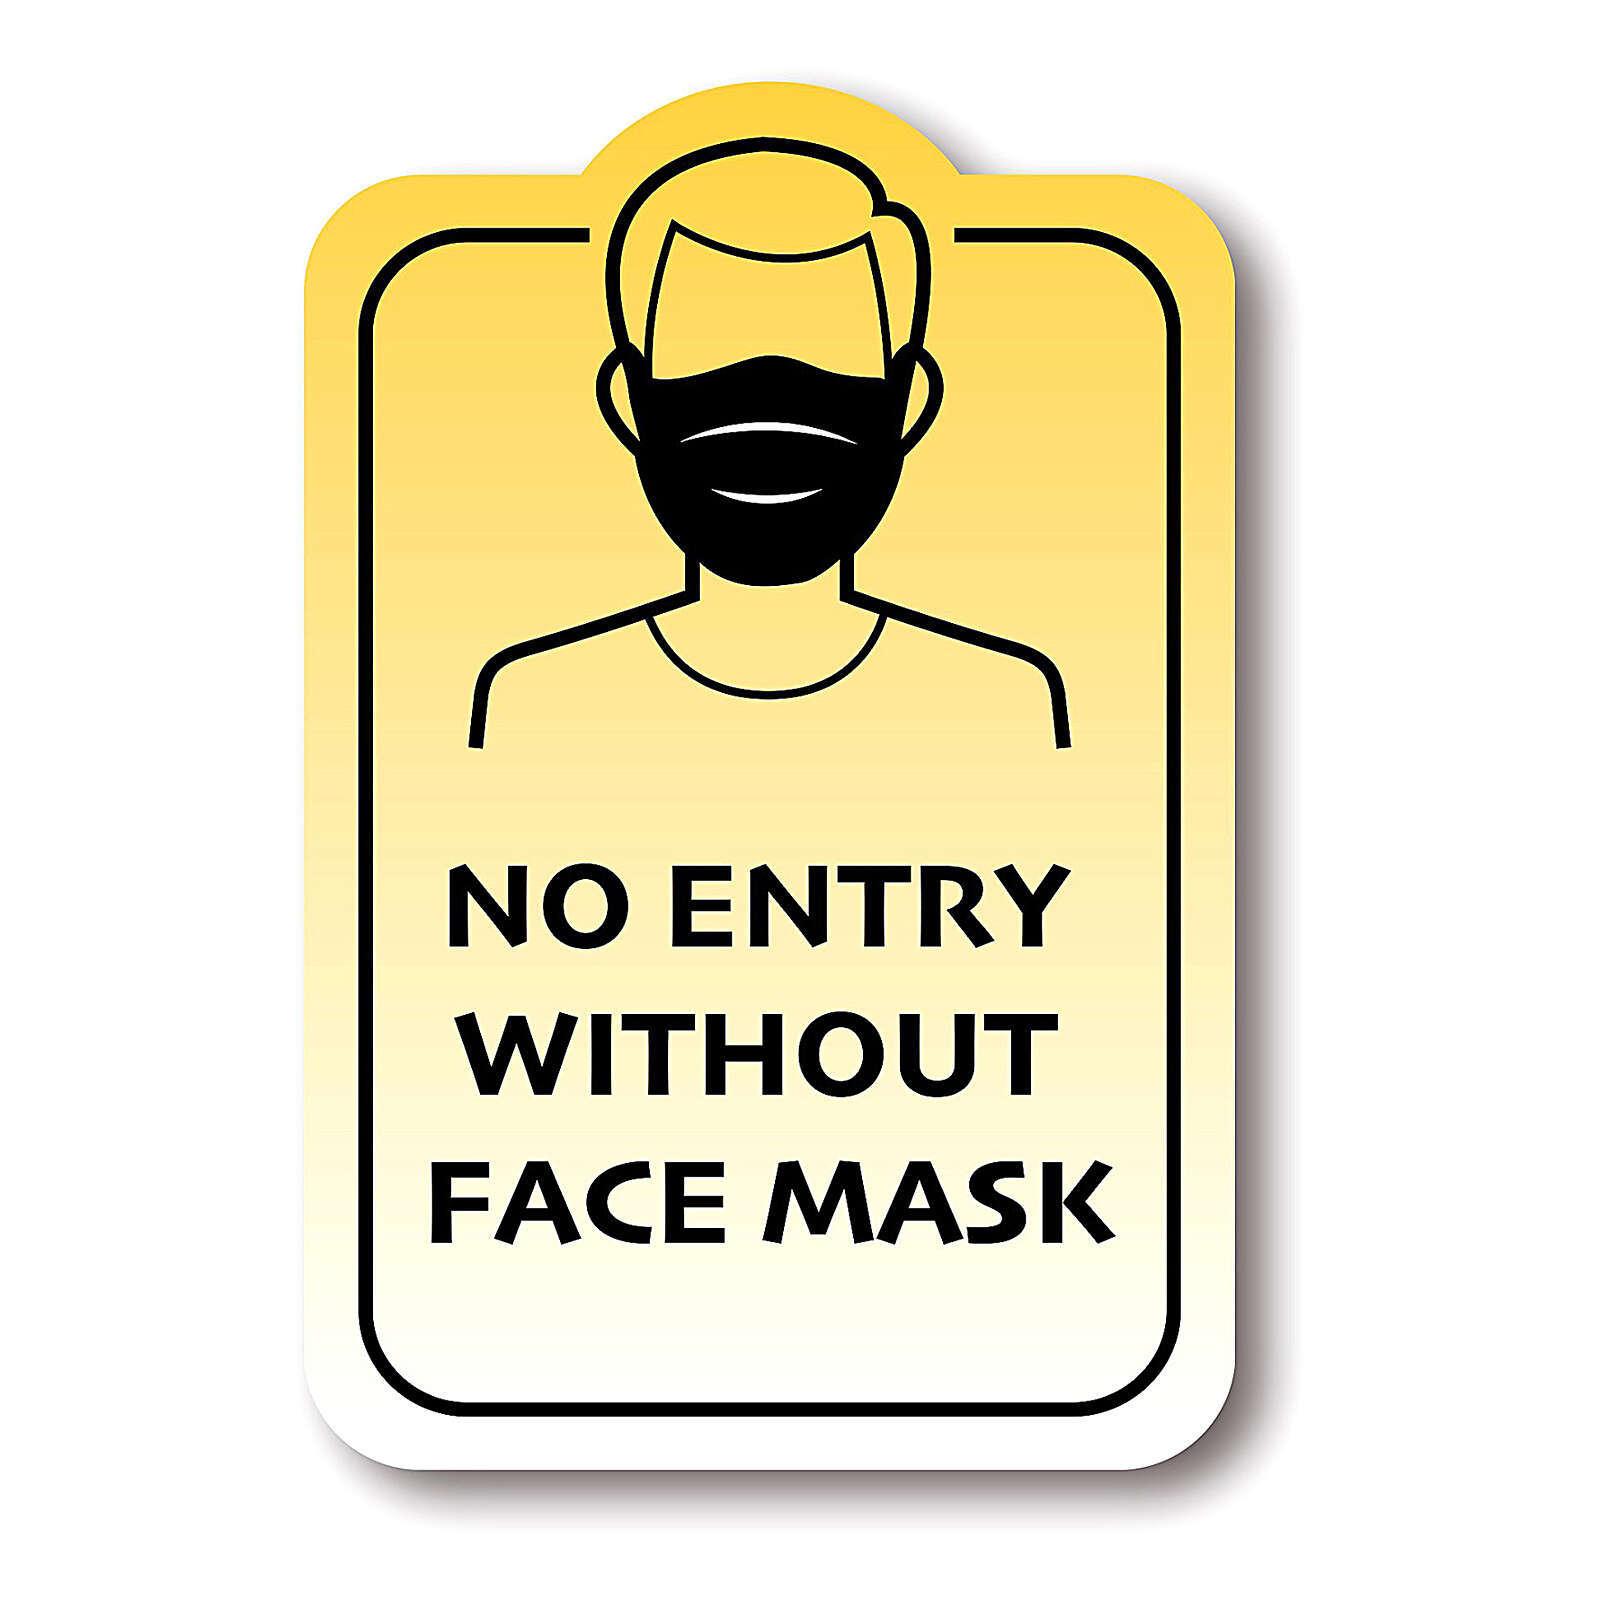 Removable stickers 4 PIECES - NO ENTRY WITHOUT FACE MASK 3